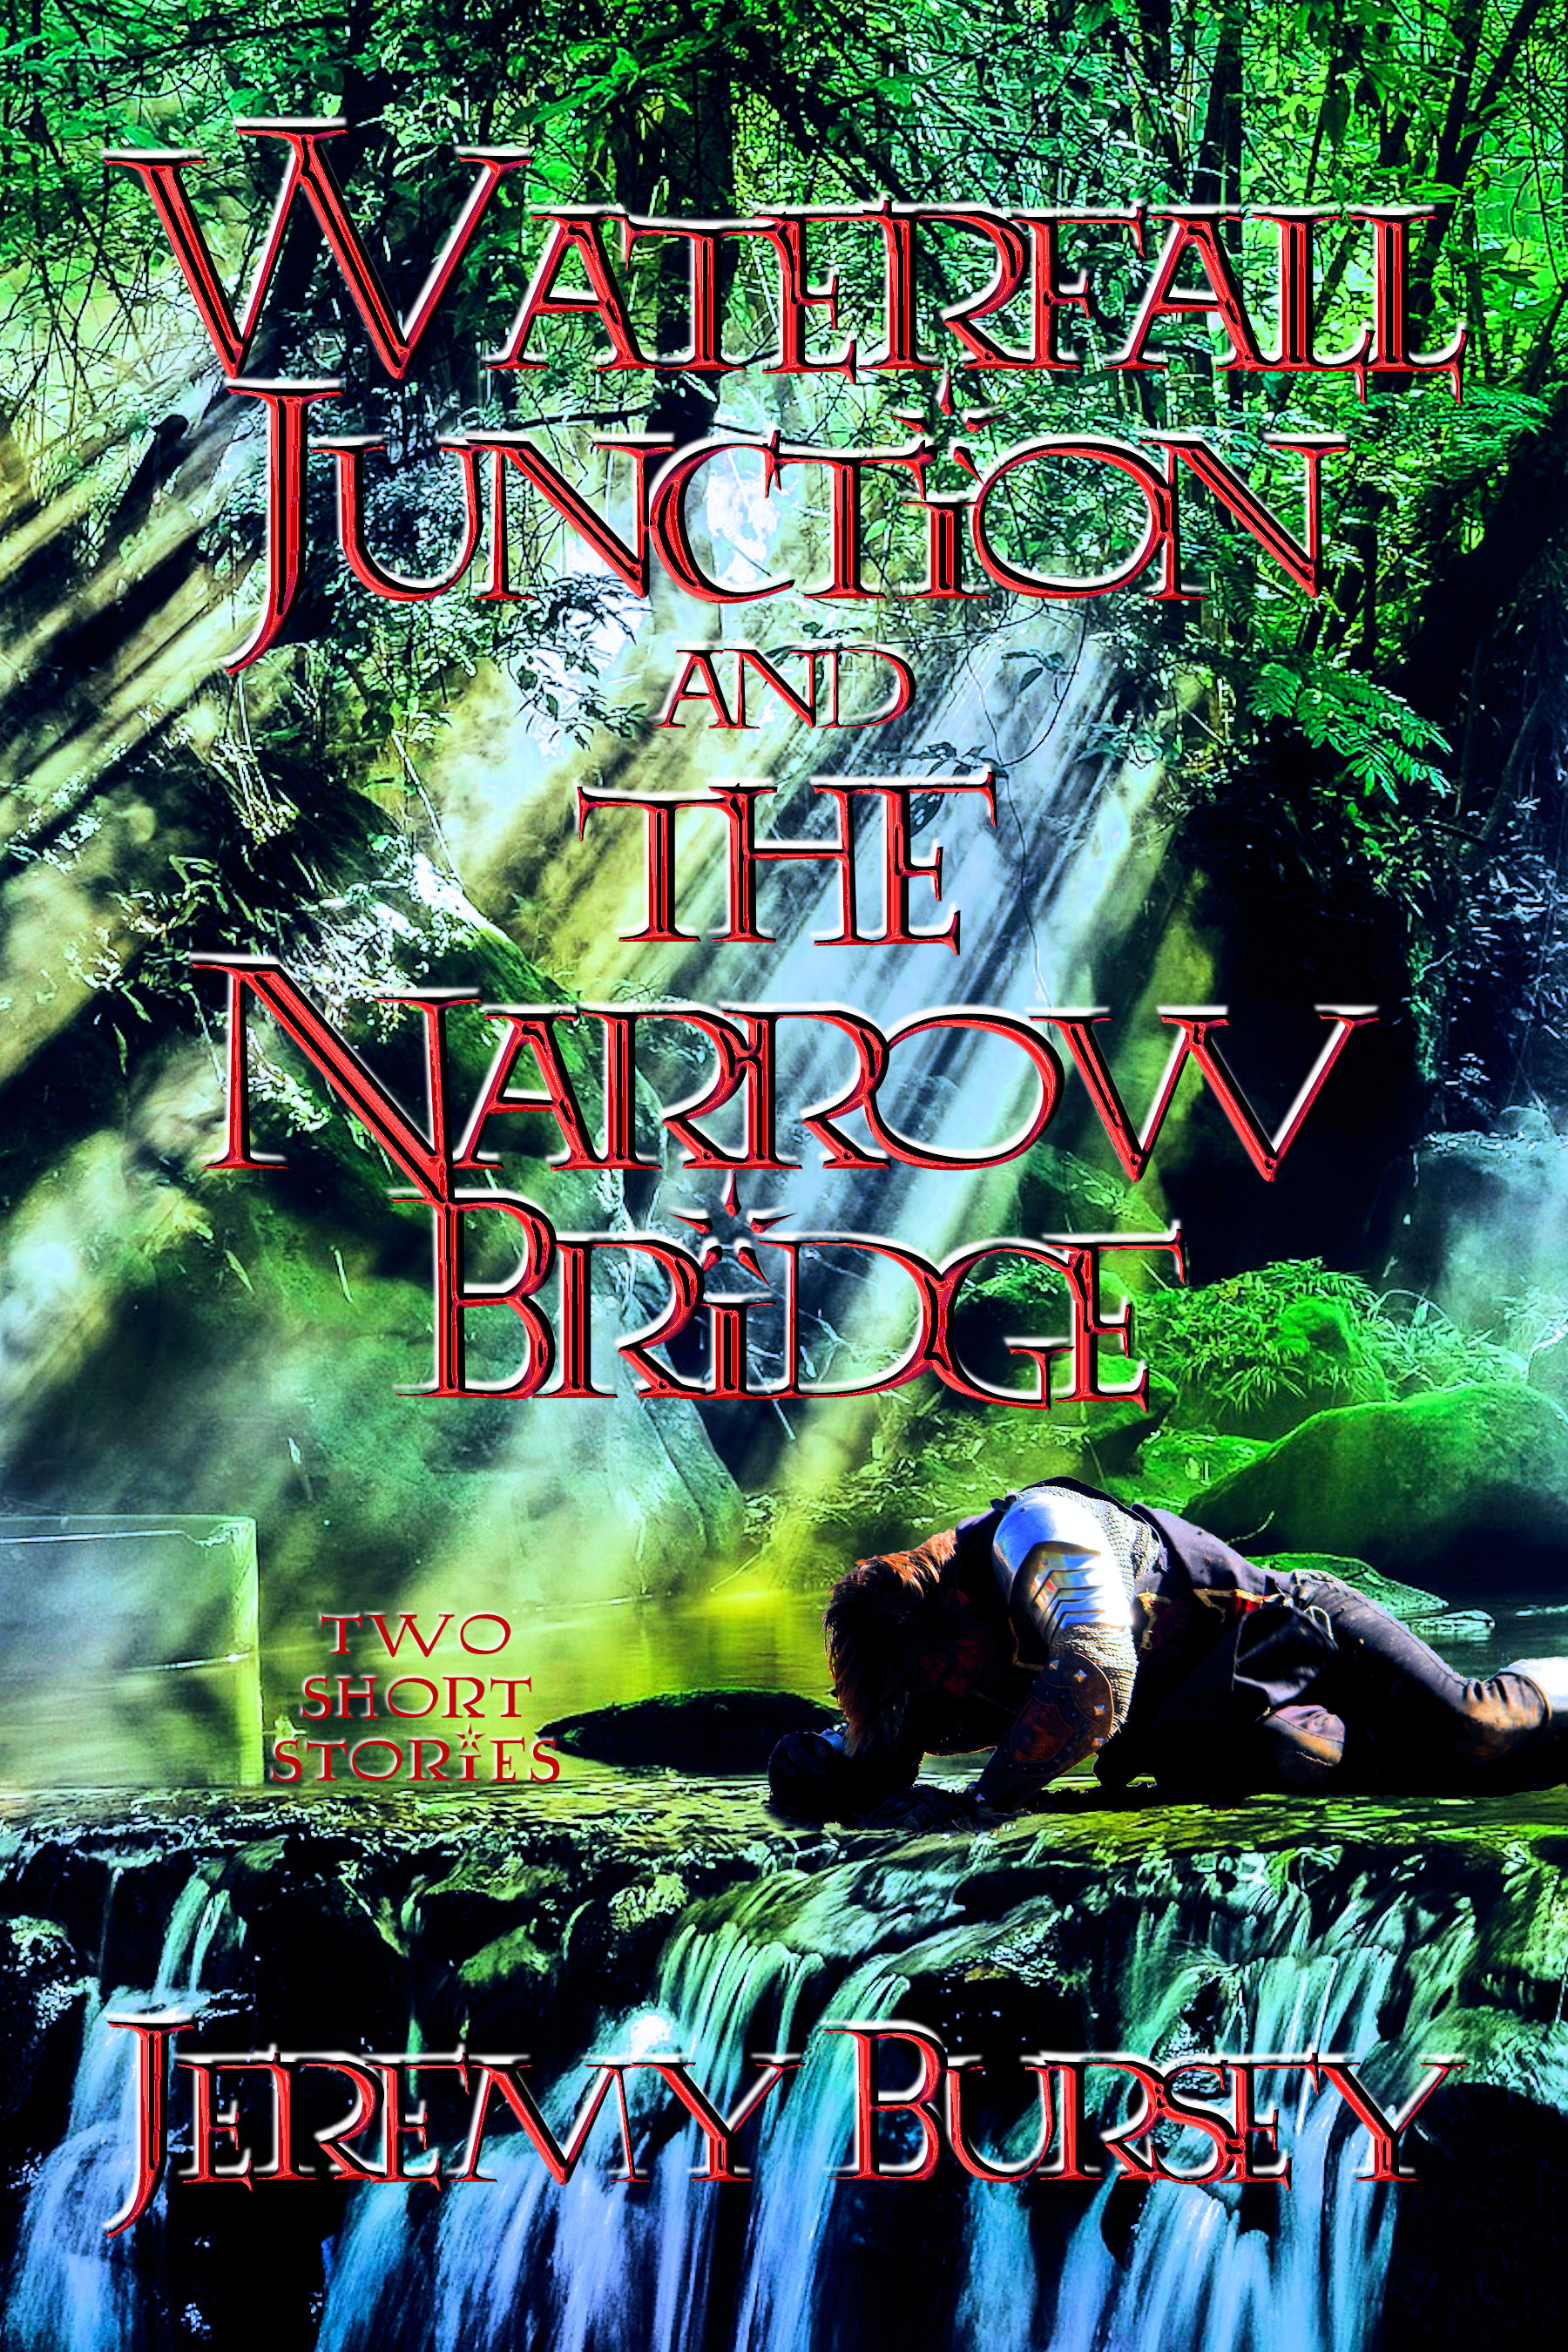 Waterfall Junction and The Narrow Bridge: Two Short Stories by Jeremy Bursey